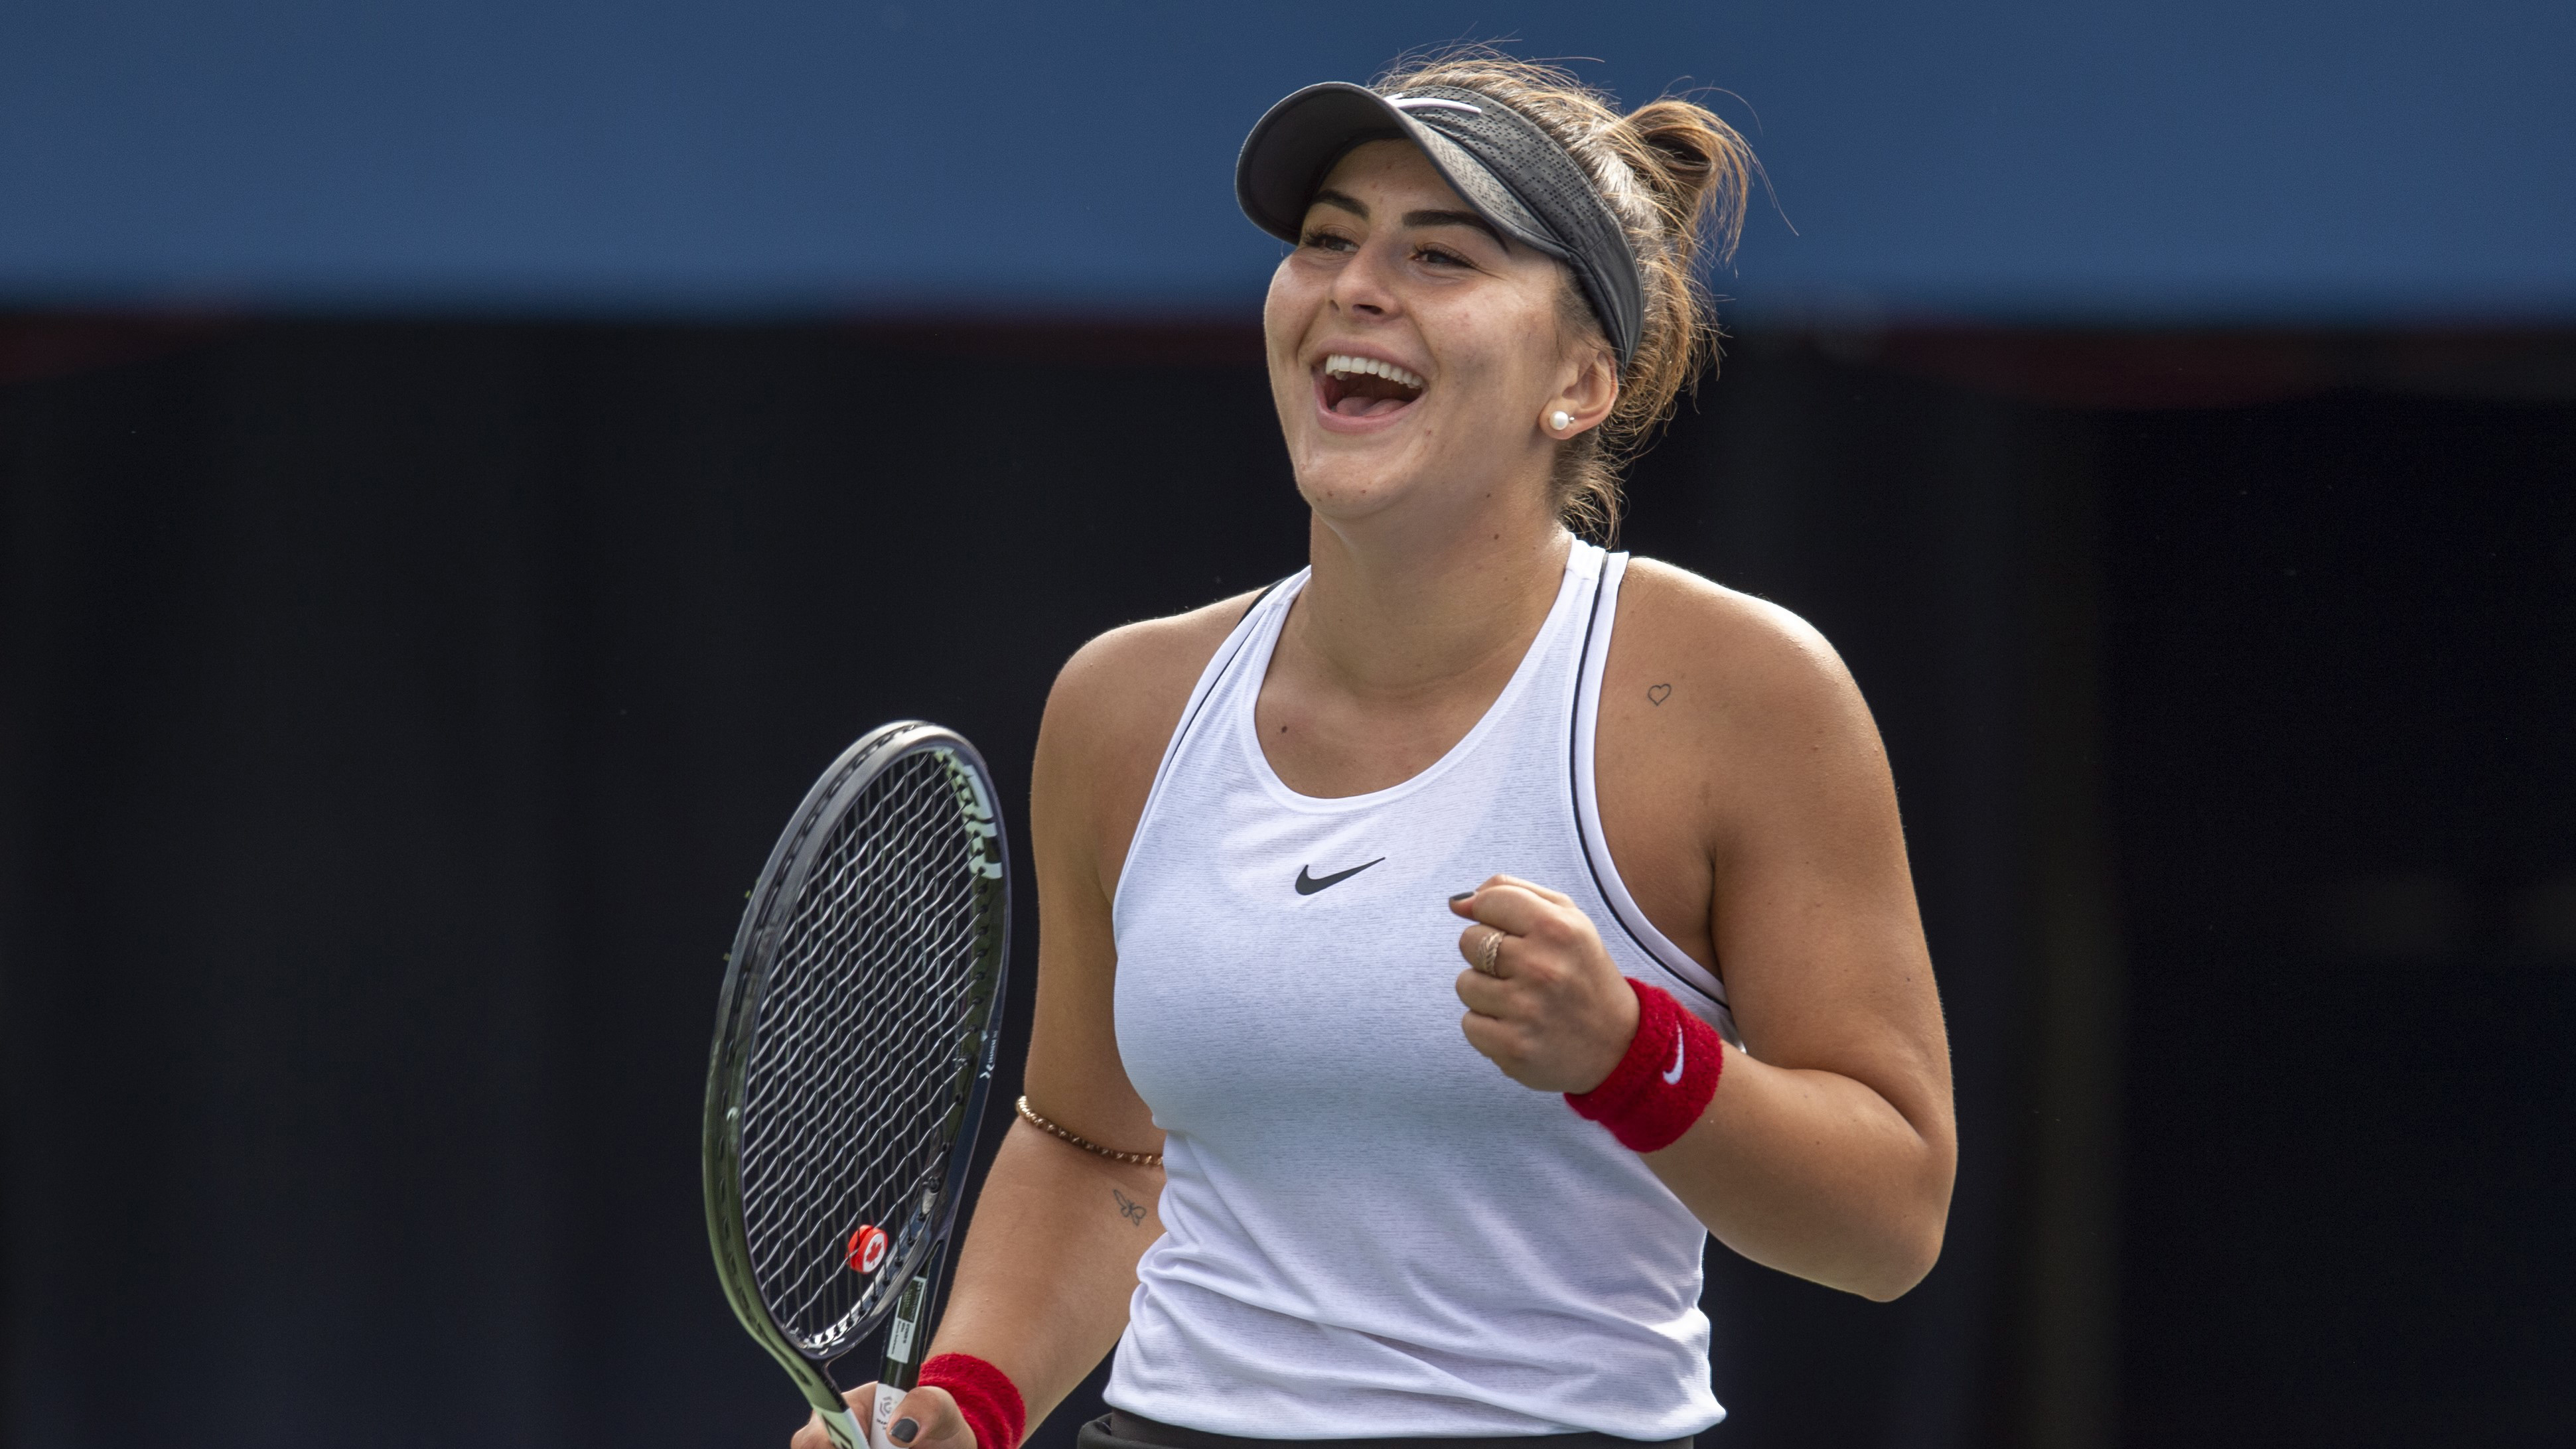 Bianca Andreescu, Canadian tennis player